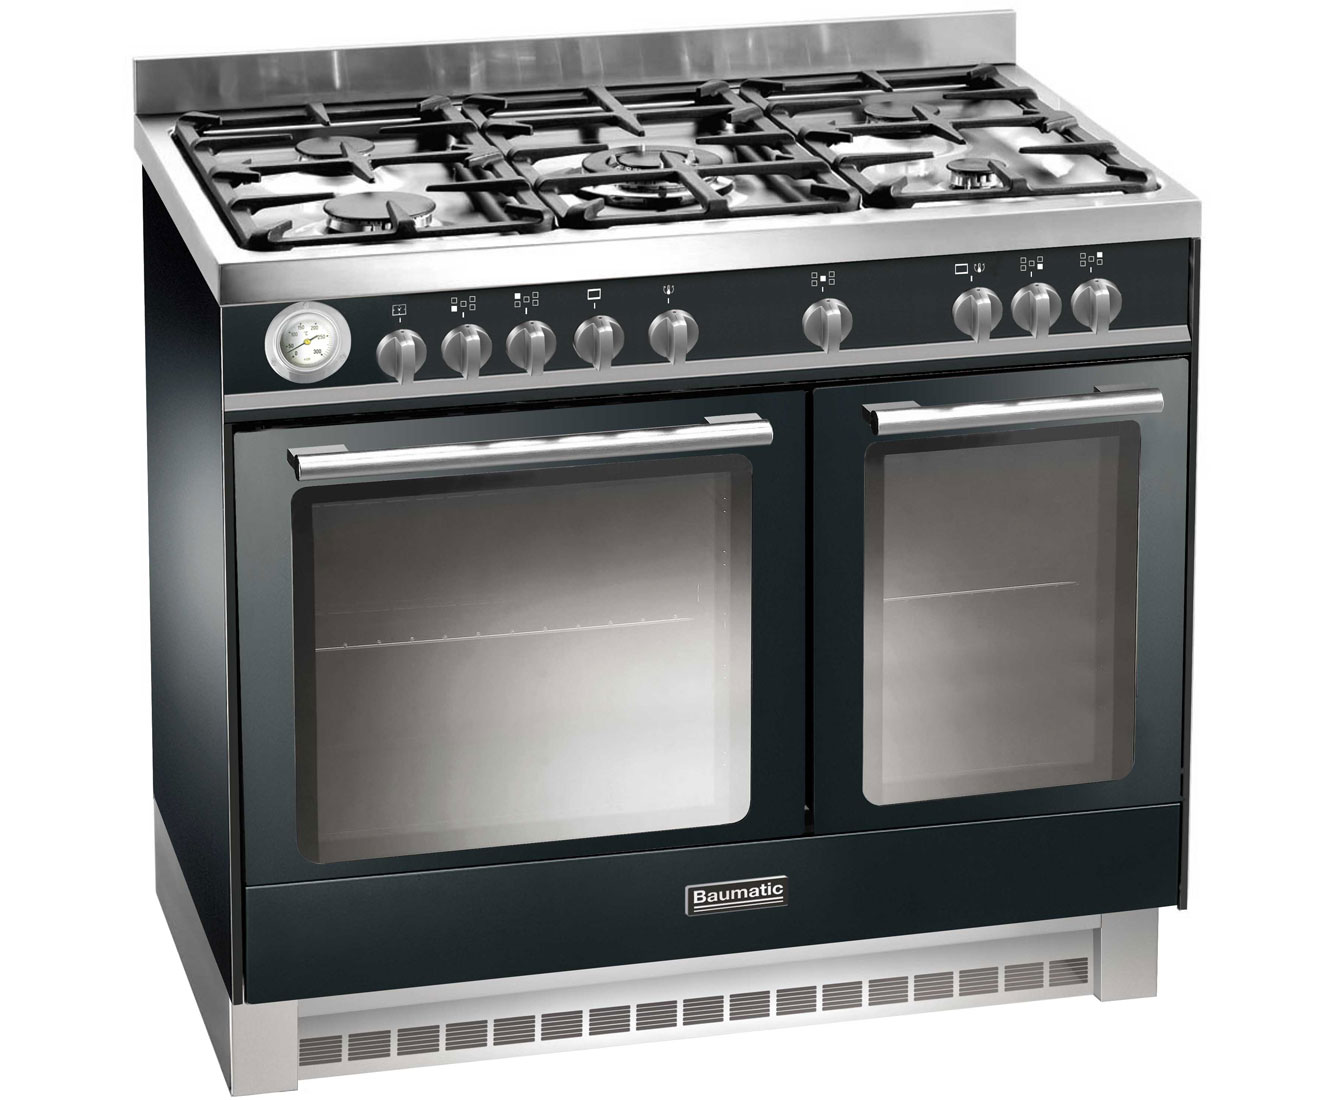 Baumatic BCD925BL Free Standing Range Cooker in Black